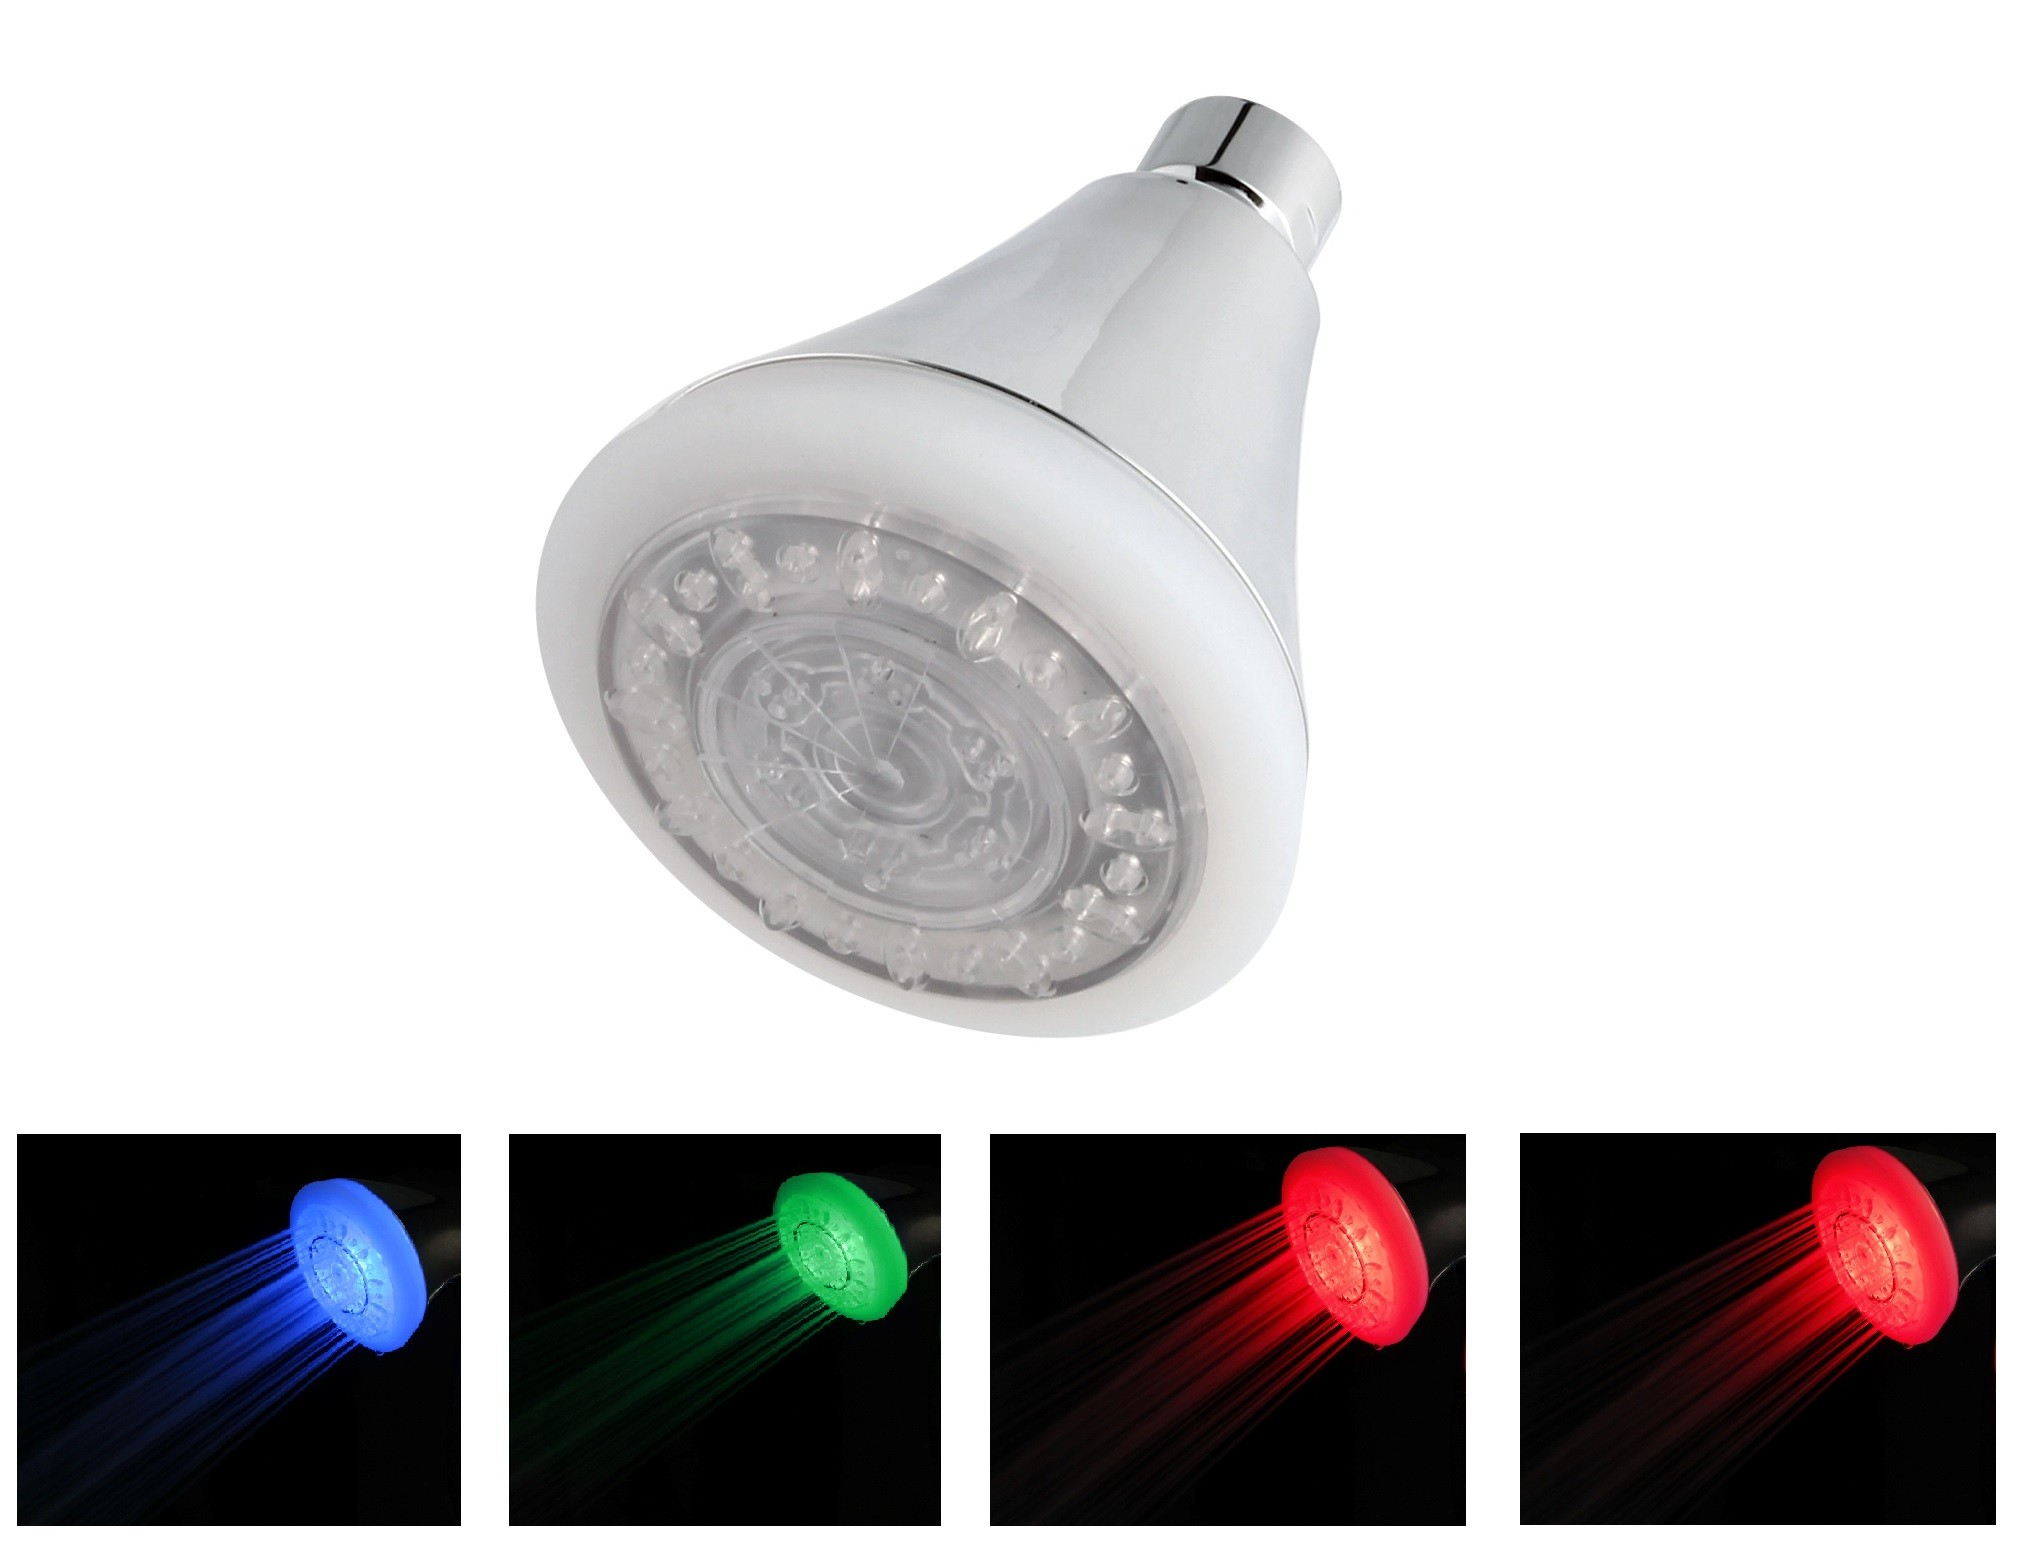 2 Function 3.4-Inch LED Temperature Sensitive Color Changing Showerhead